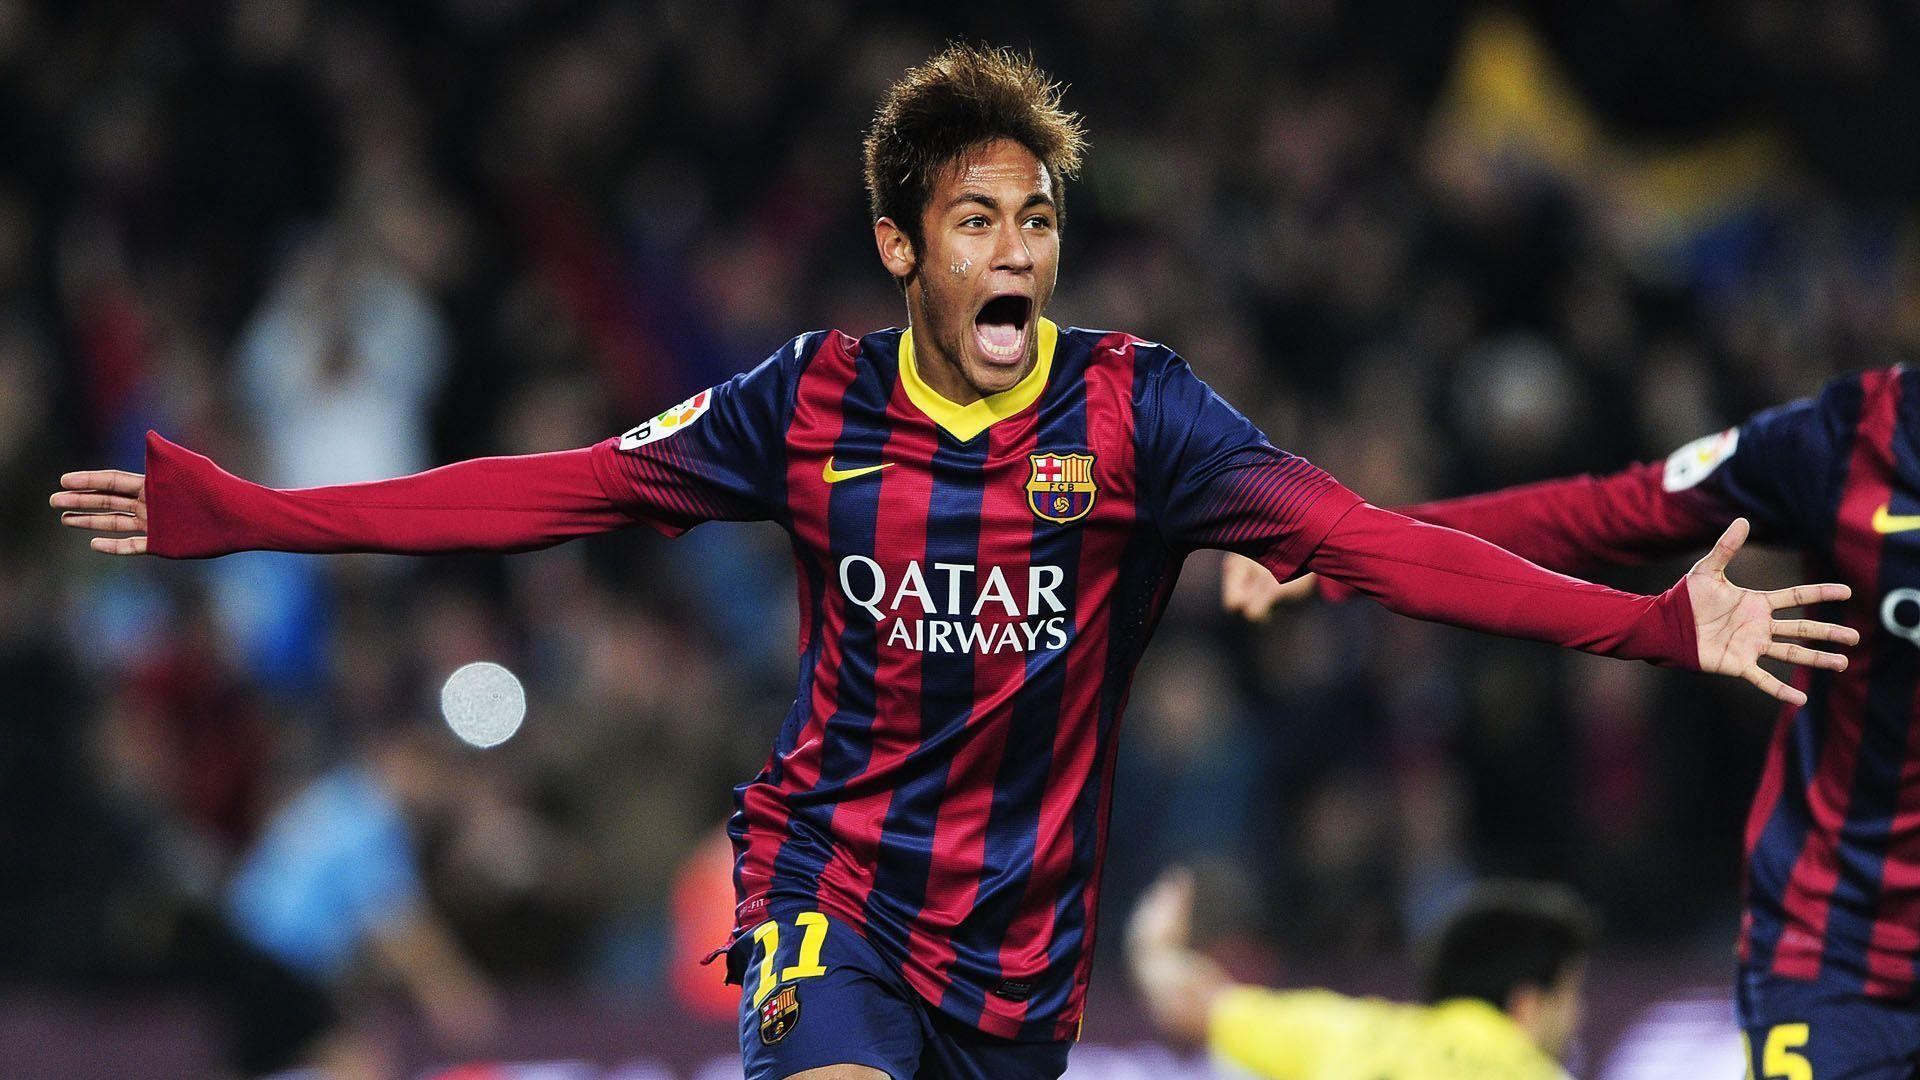 Neymar – Biography and player analysis